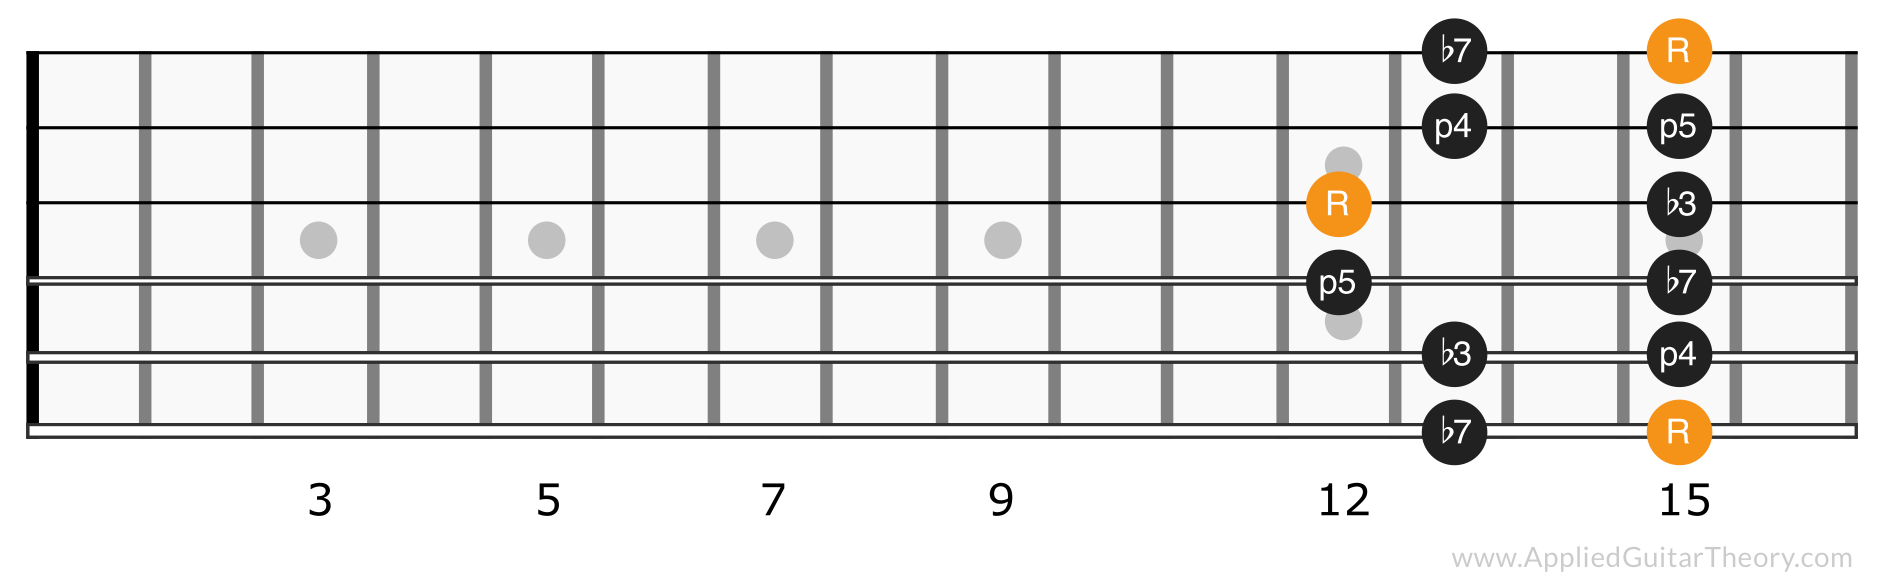 Minor pentatonic scale position 5